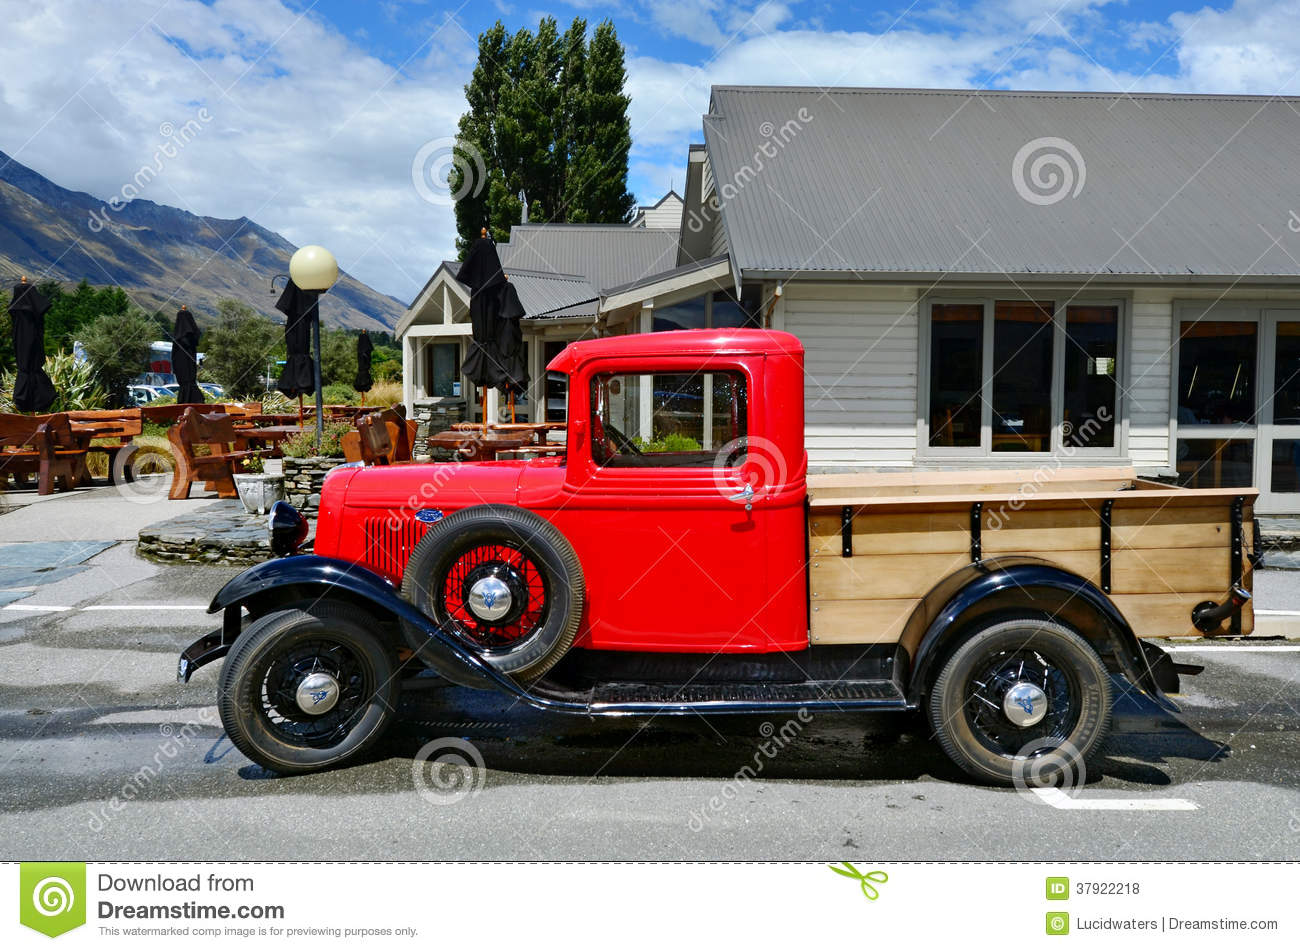 Classic pickup truck vehicle vintage